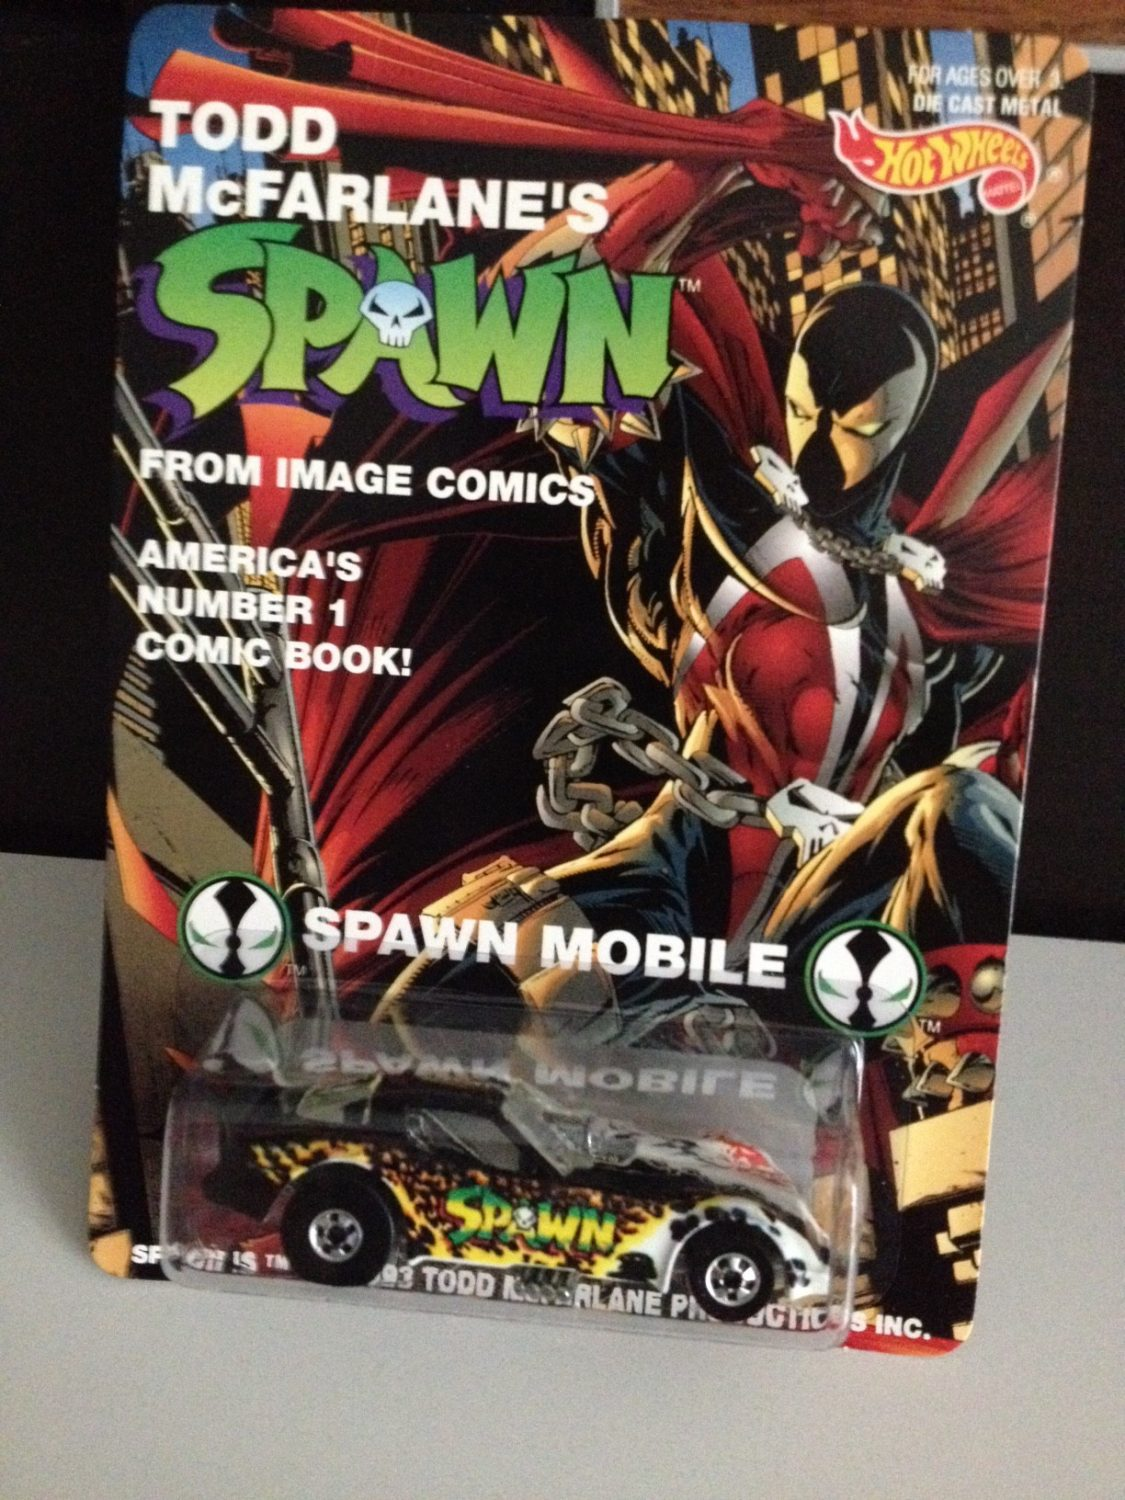 NYCC 2014 – Spawn Hot Wheels Car Giveaway At The McFarlane Toys Booth